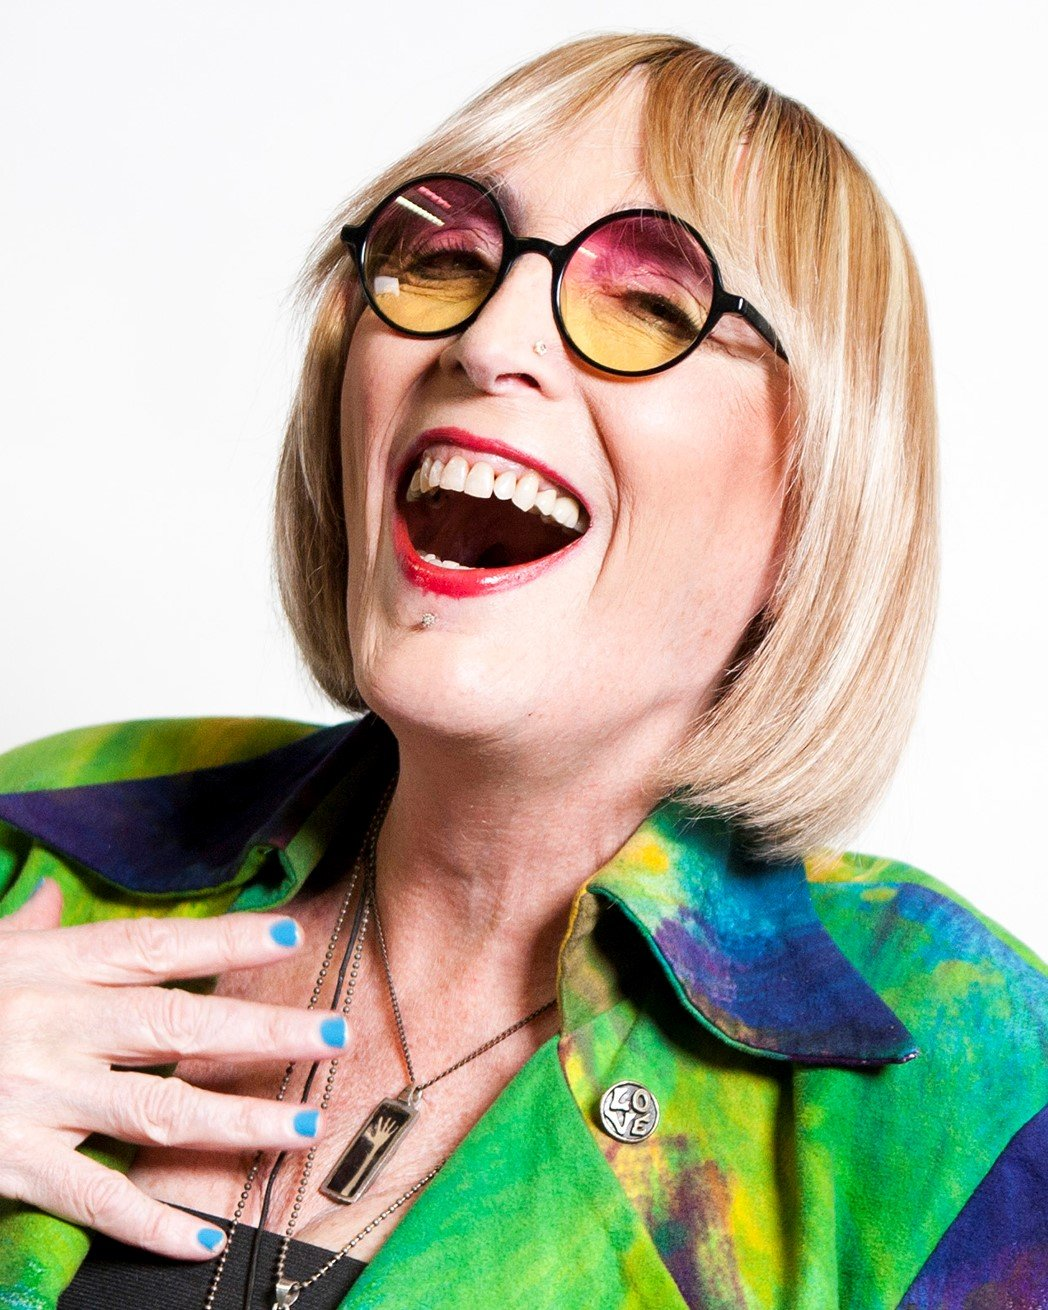 Interview: Kate Bornstein on Their Broadway Debut in Straight White Men